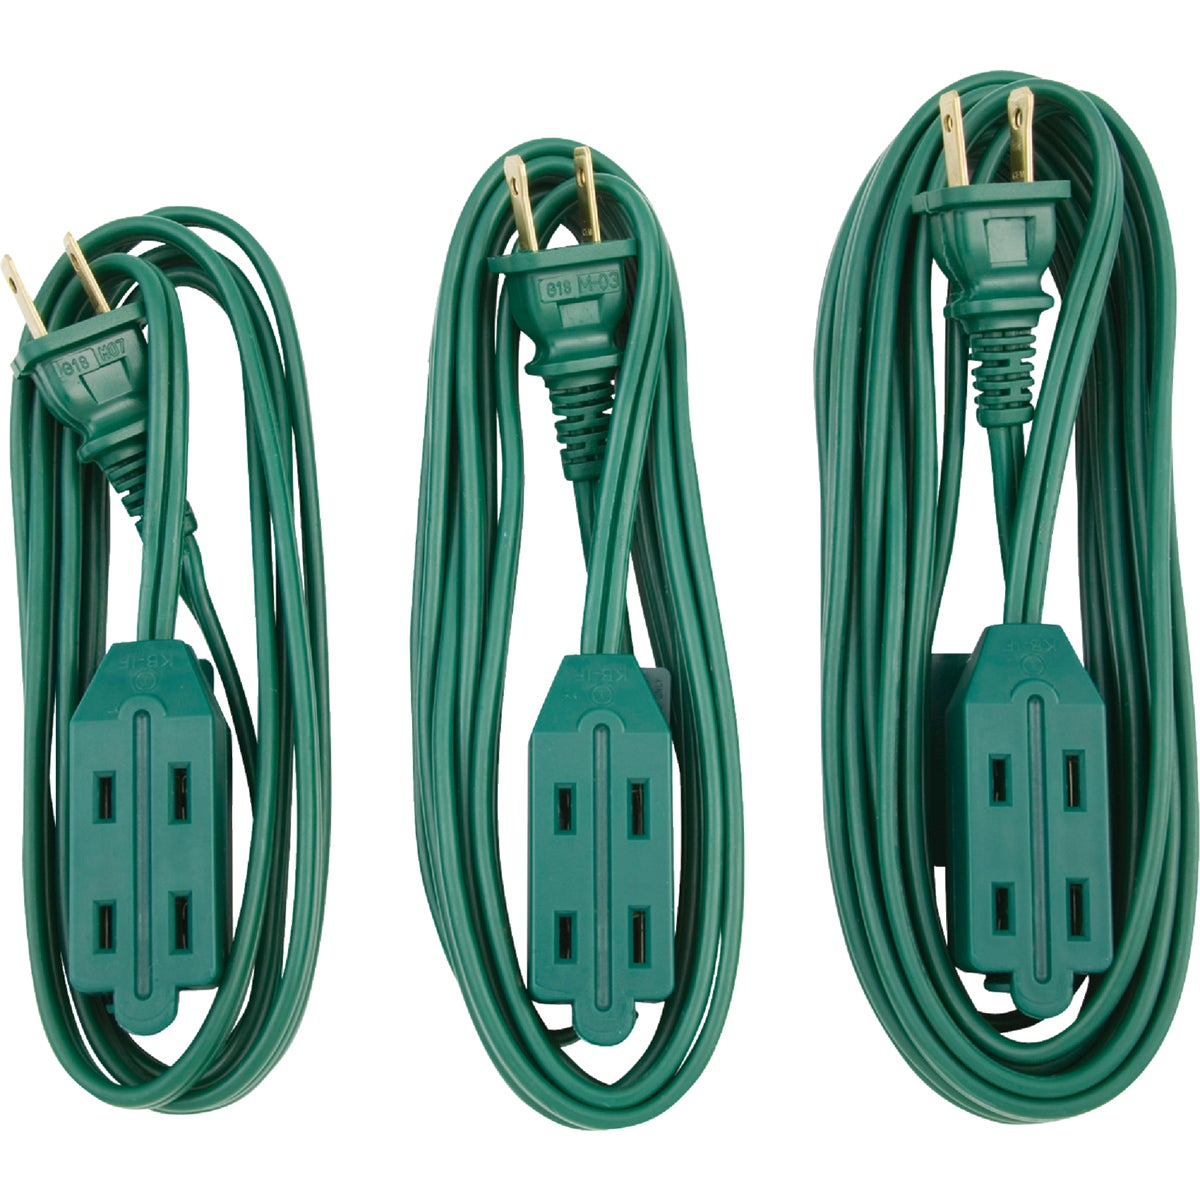 3PC 16/2 EXT SET CORD - IN-PT2162-3PK-GR by Do it Best